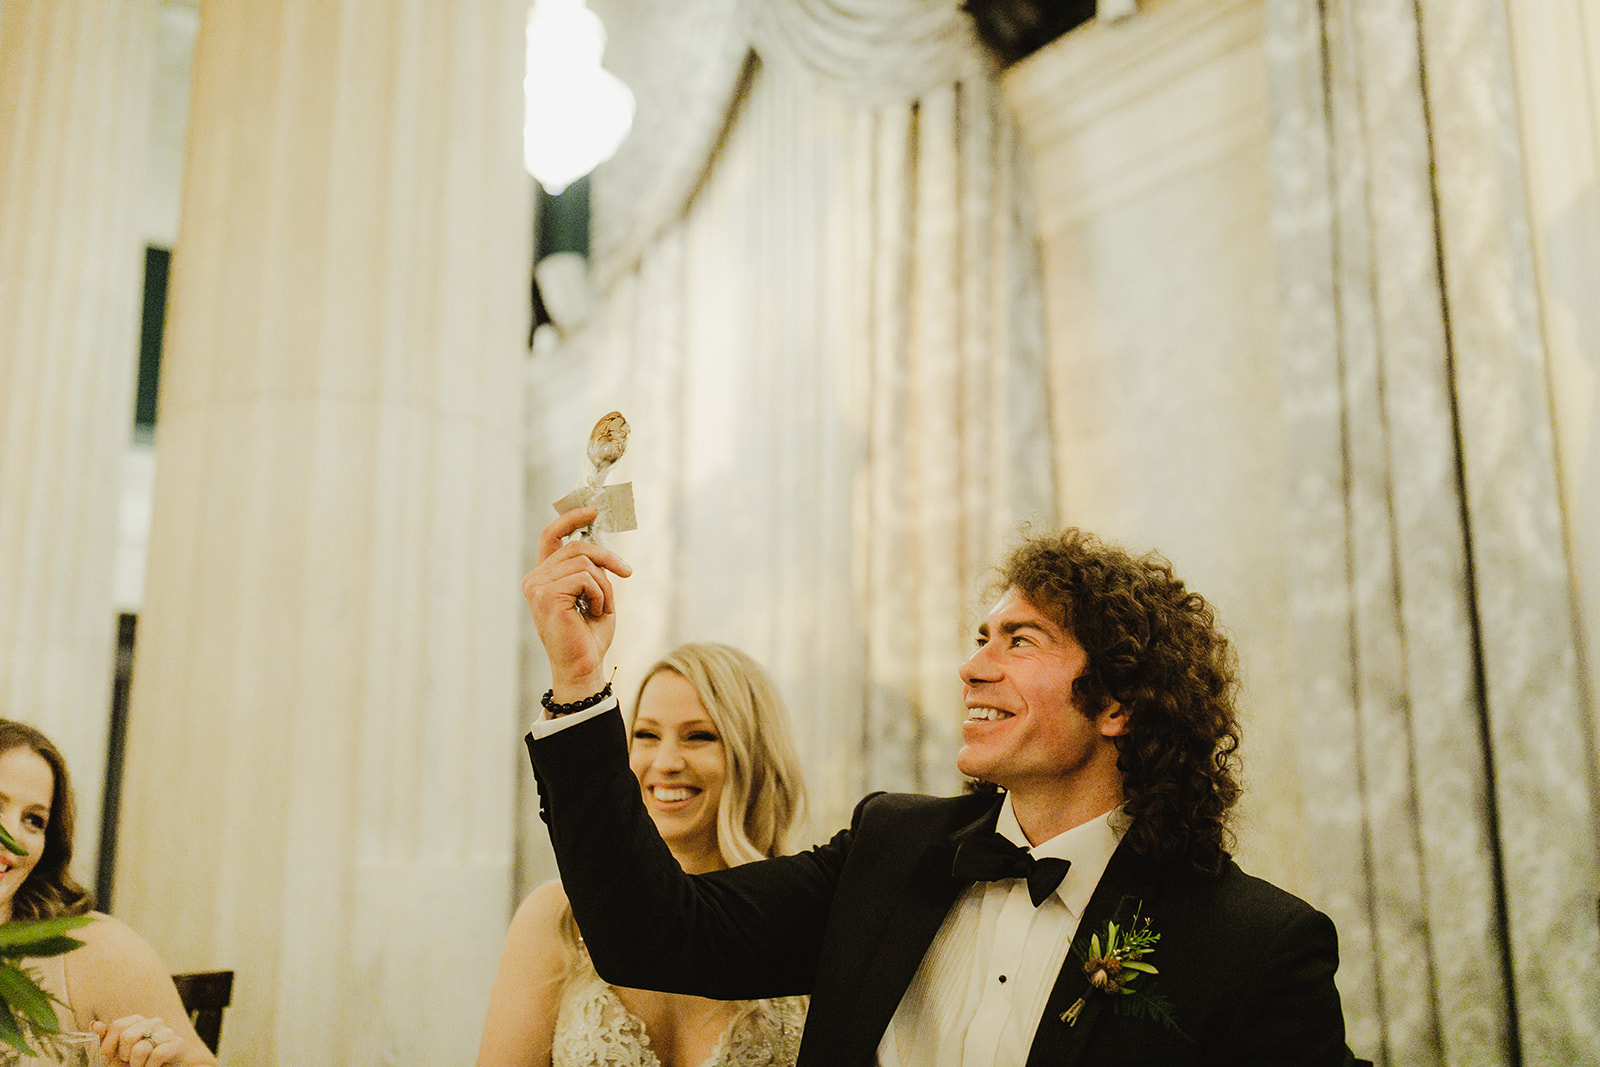 A groom smiling and holding up a spoon